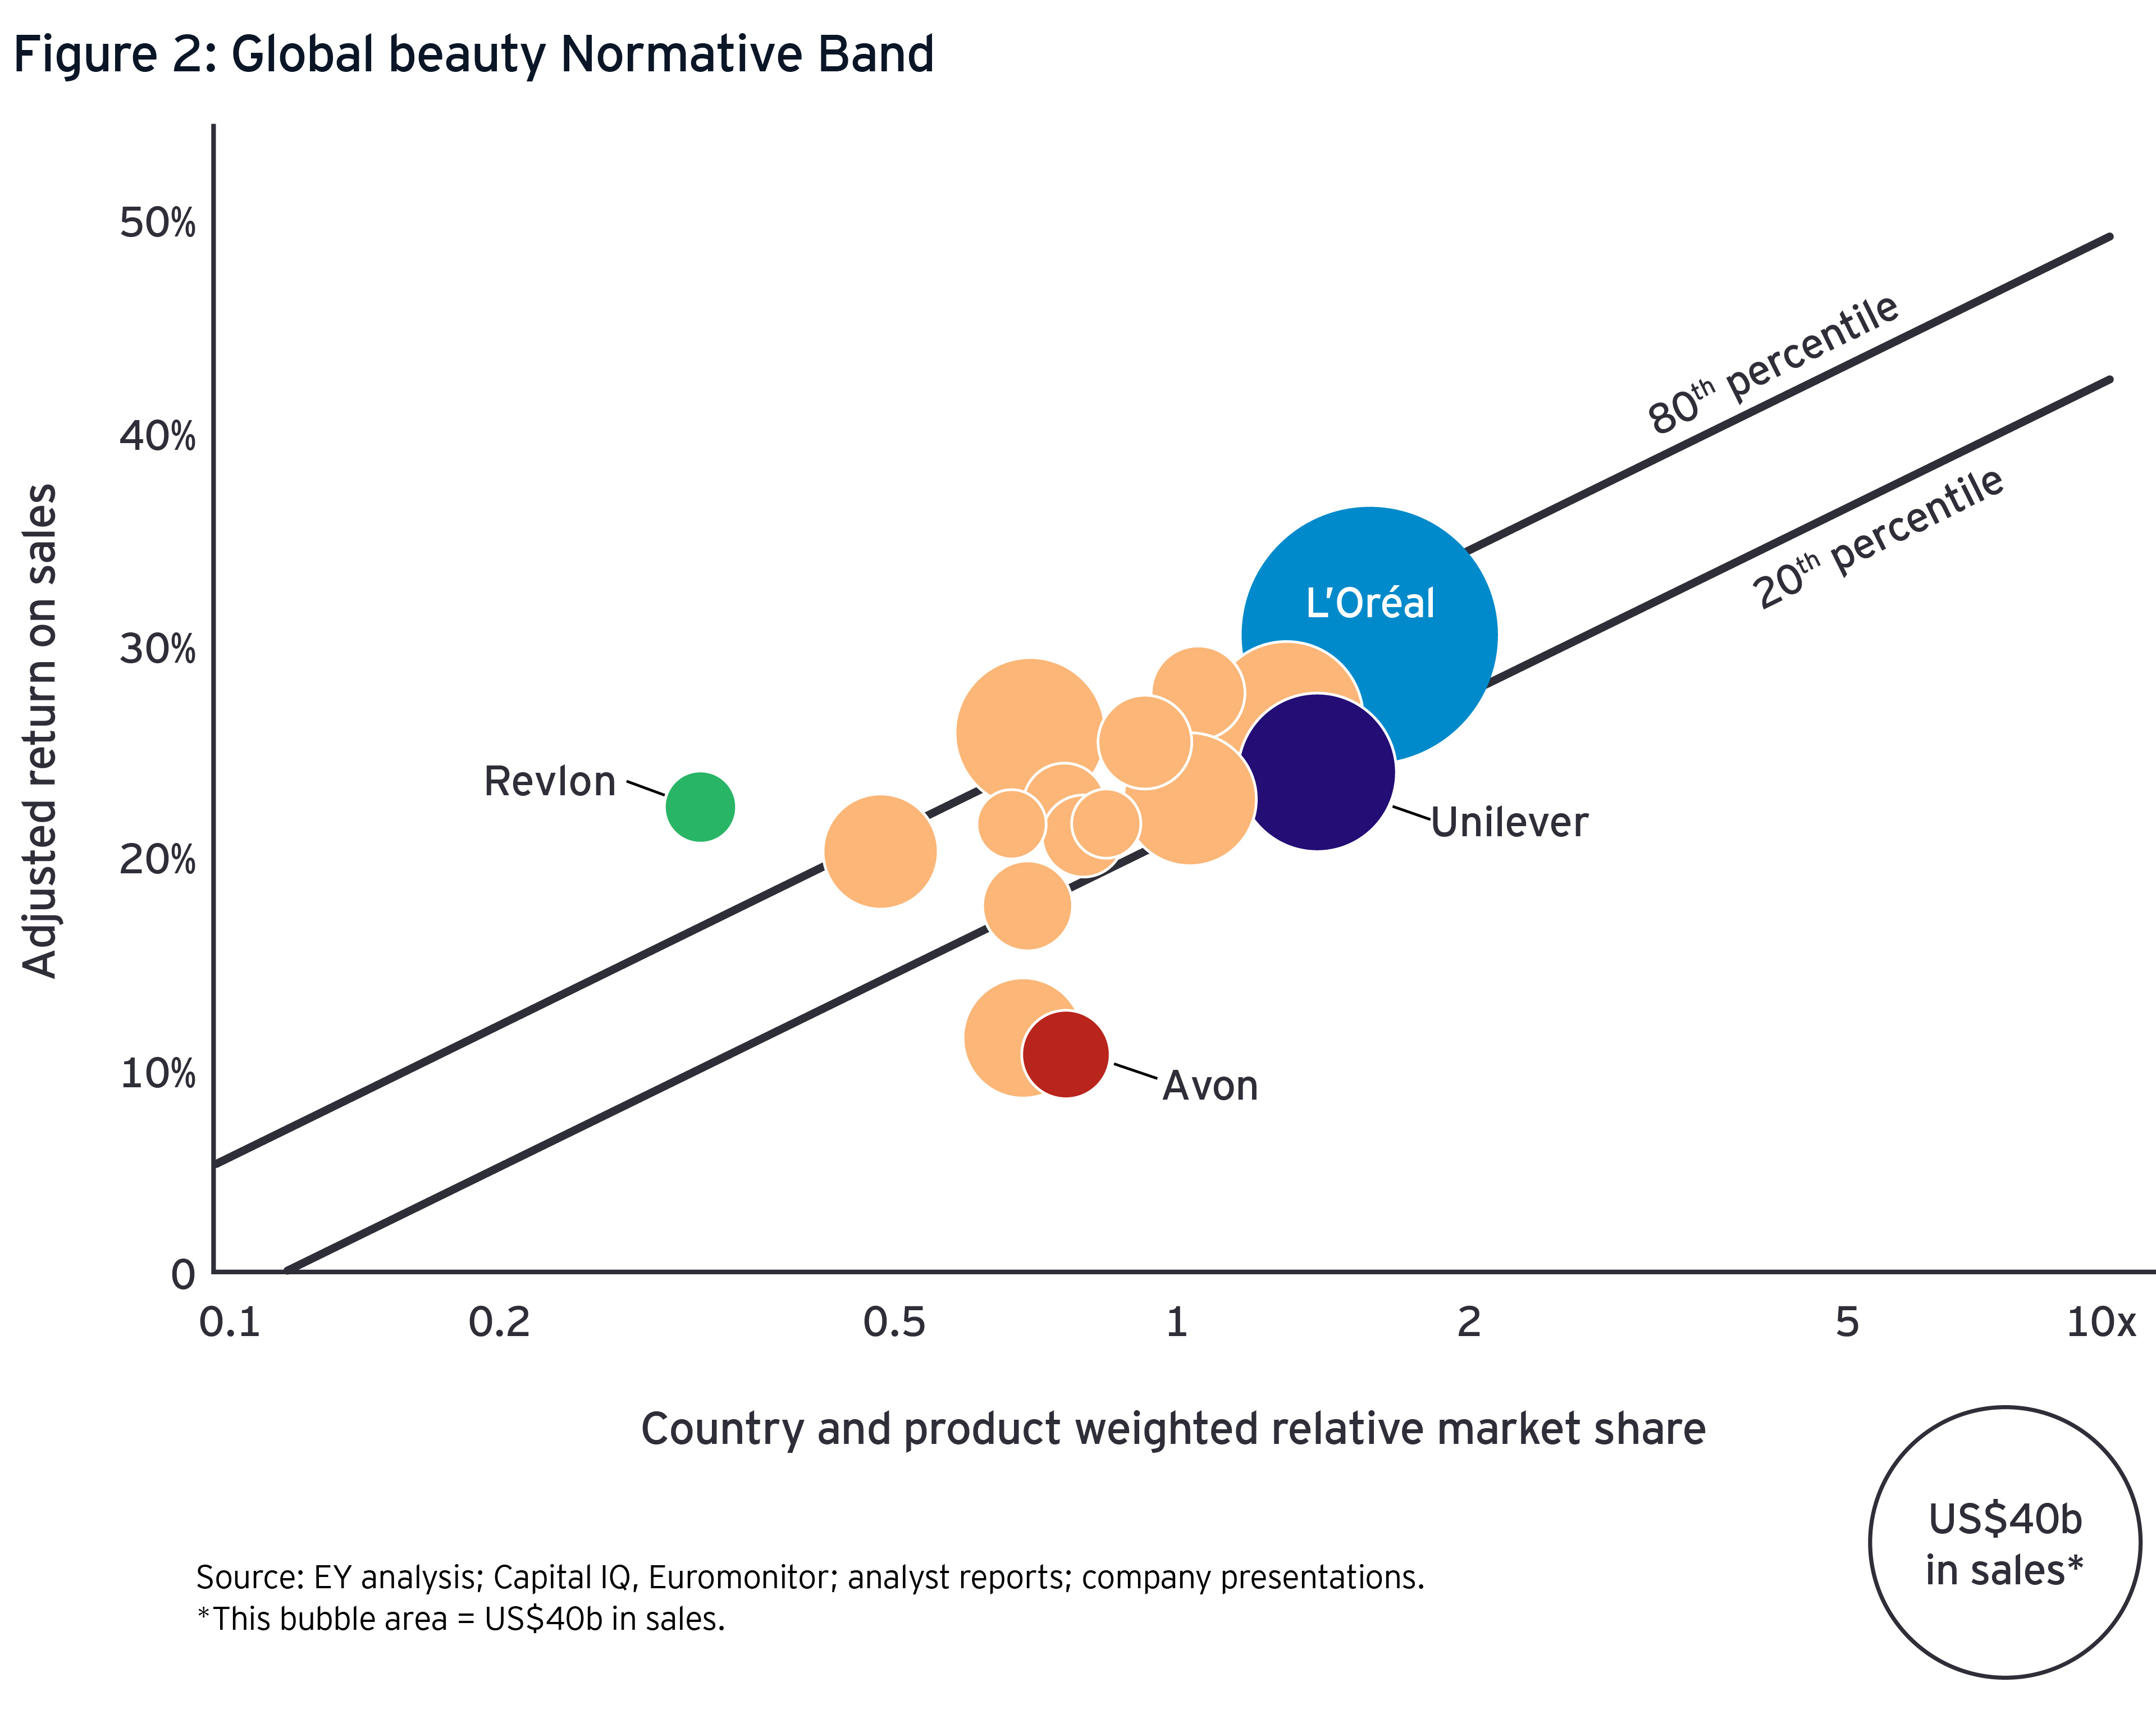 Global beauty normative band graph